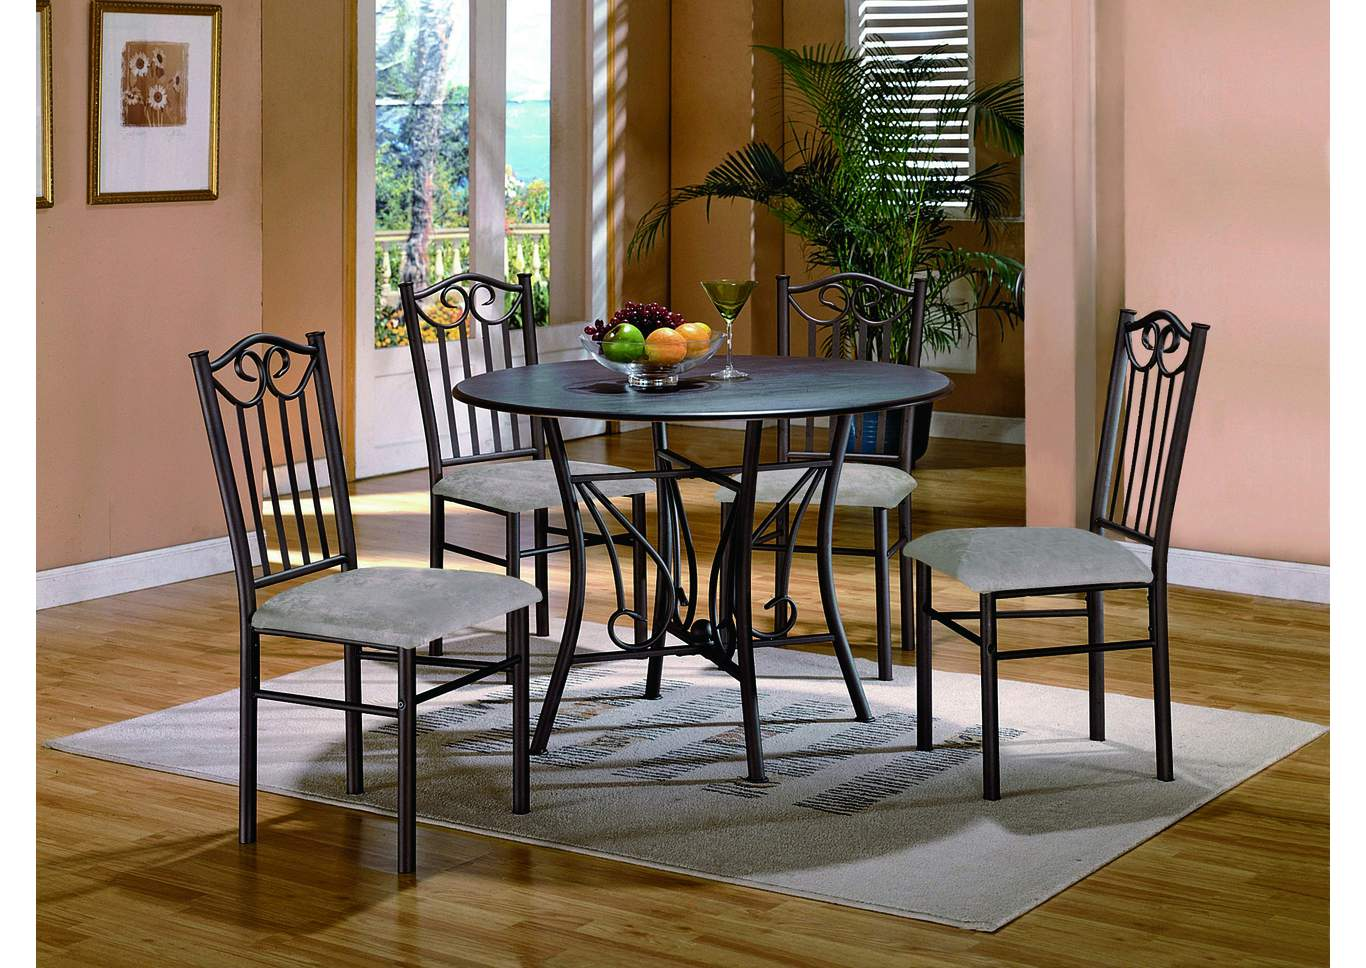 Hayes Taupe Round Dining Room Table W/ 4 Side Chairs,Crown Mark